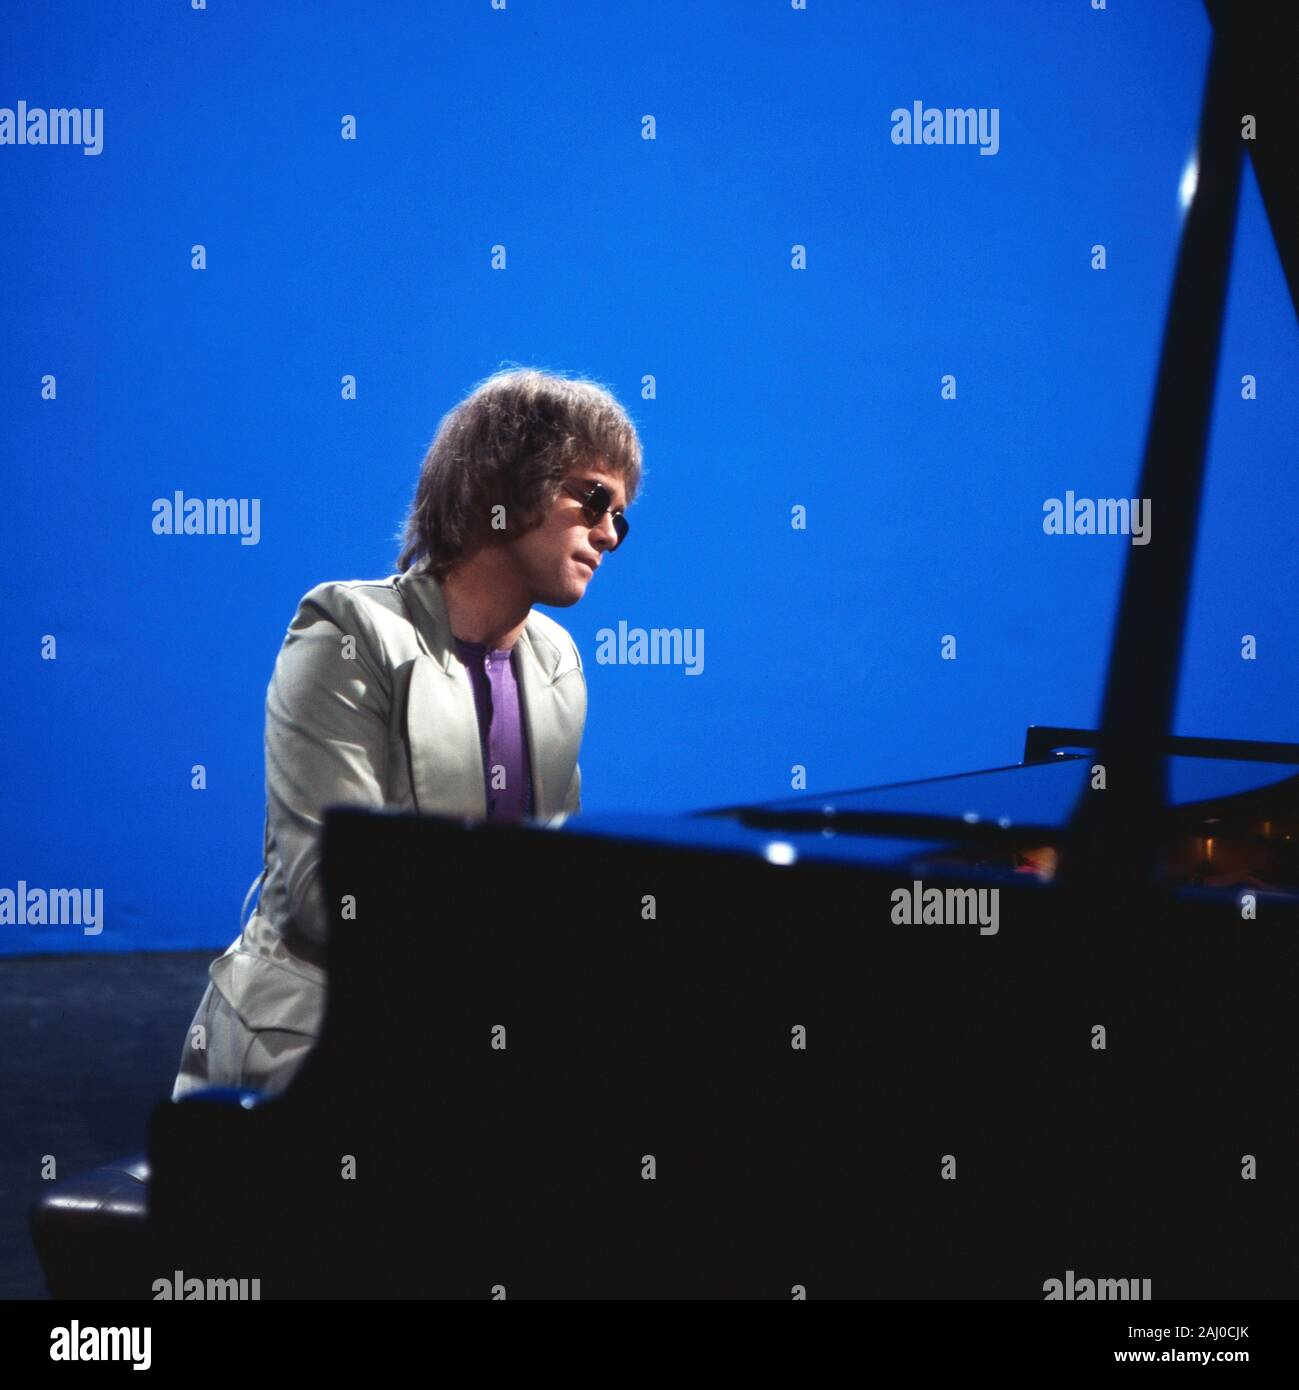 4-3-2-1 Hot and Sweet, Musiksendung, Deutschland 1970, Gaststar: Elton John Stock Photo